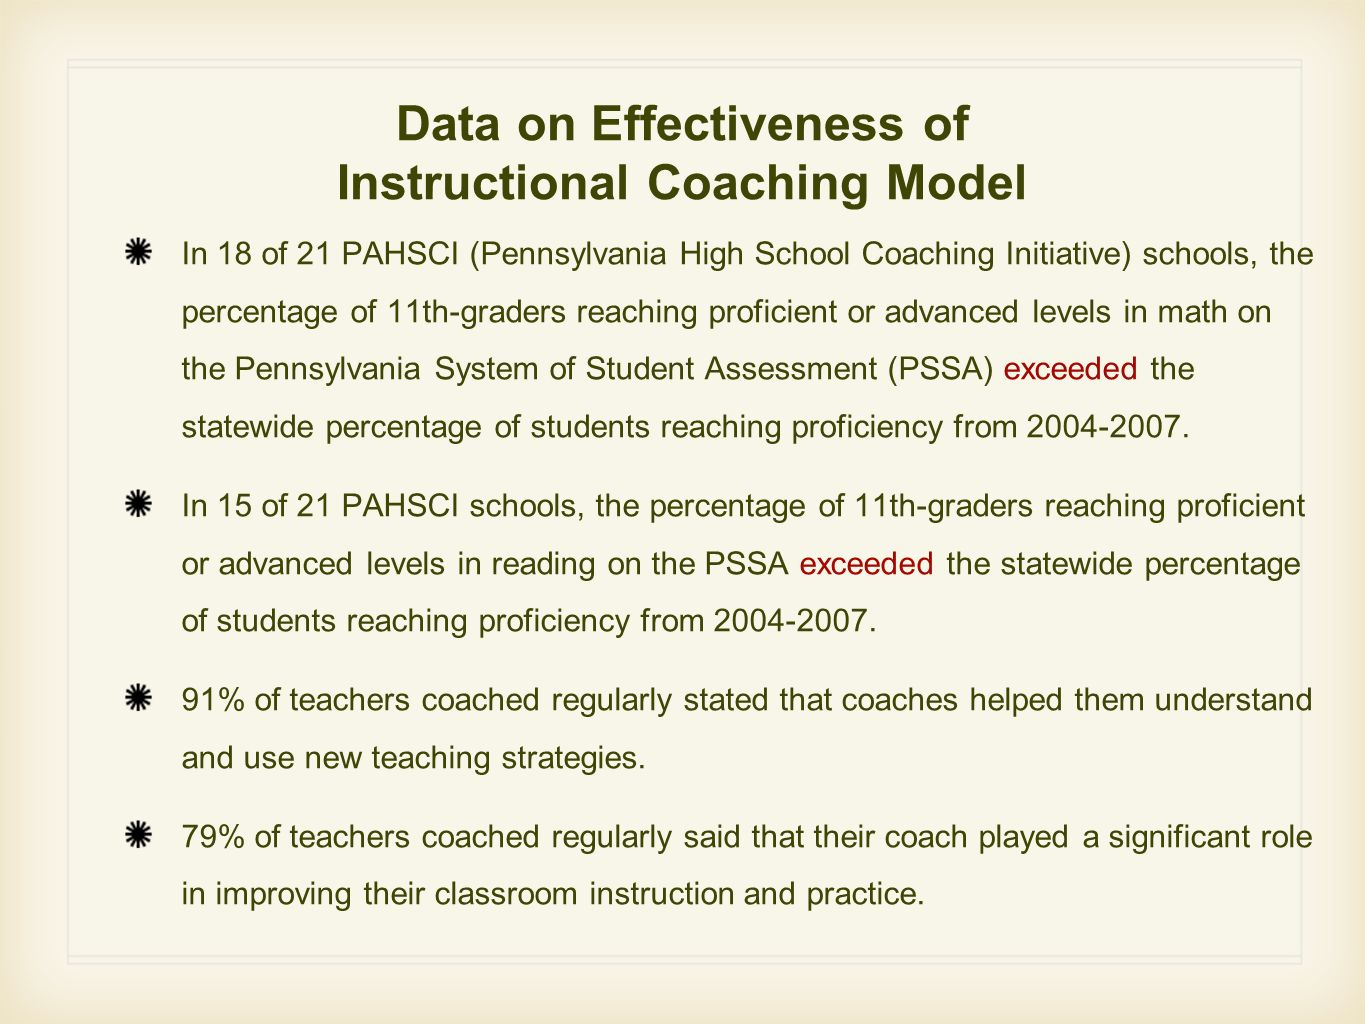 Data on Effectiveness of Instructional Coaching Model